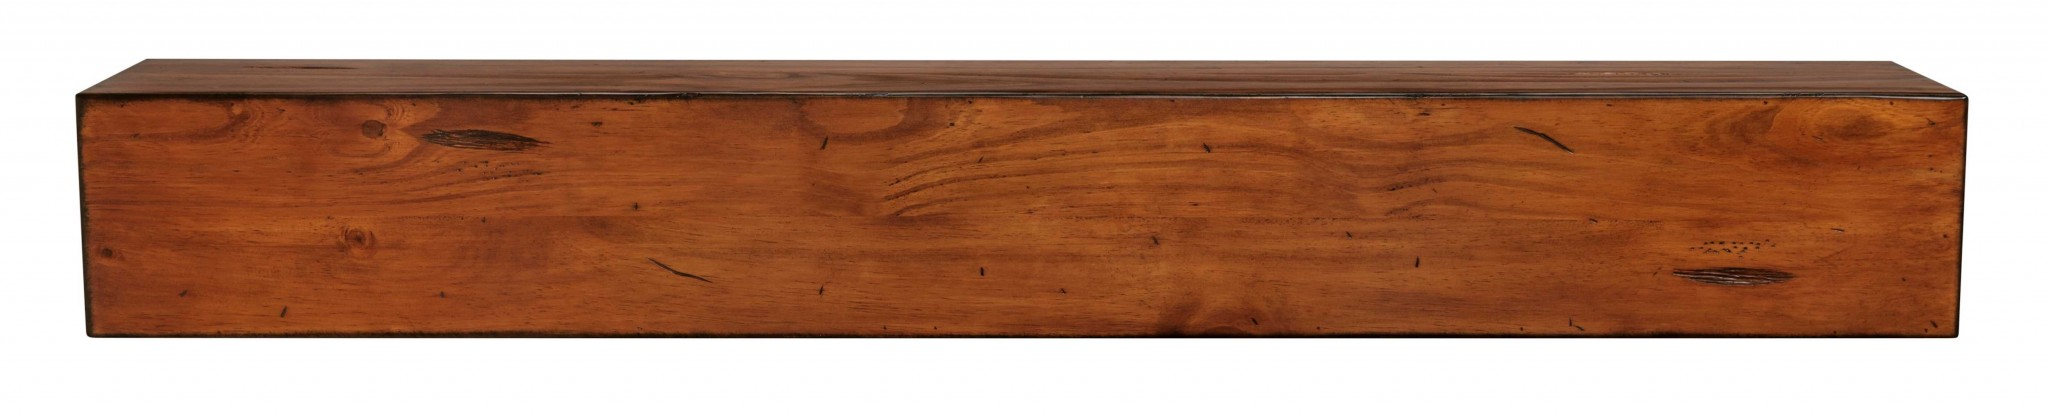 "60"" Modern Rustic Medium Distressed Pine Wood Mantel Shelf"